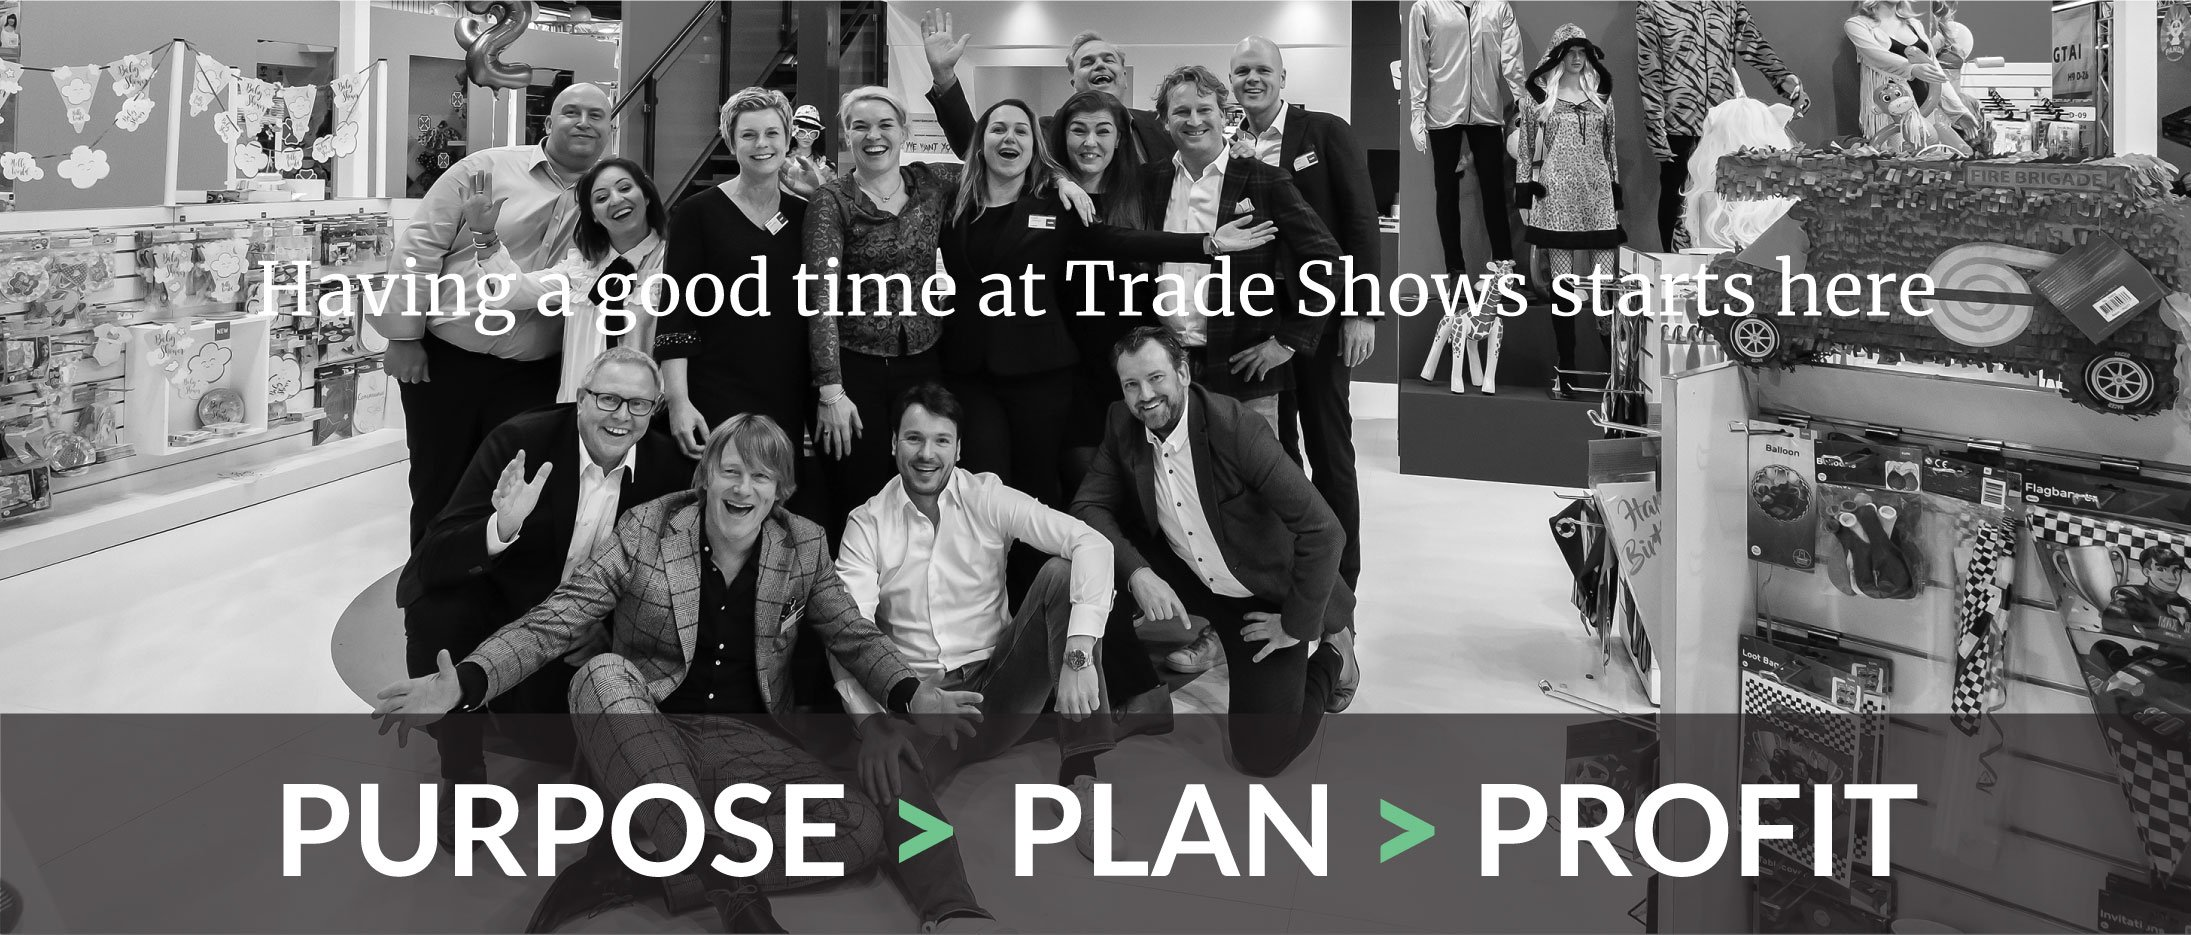 Having a good time at trade shows starts at ExpoCoach. 3 steps to trade show success